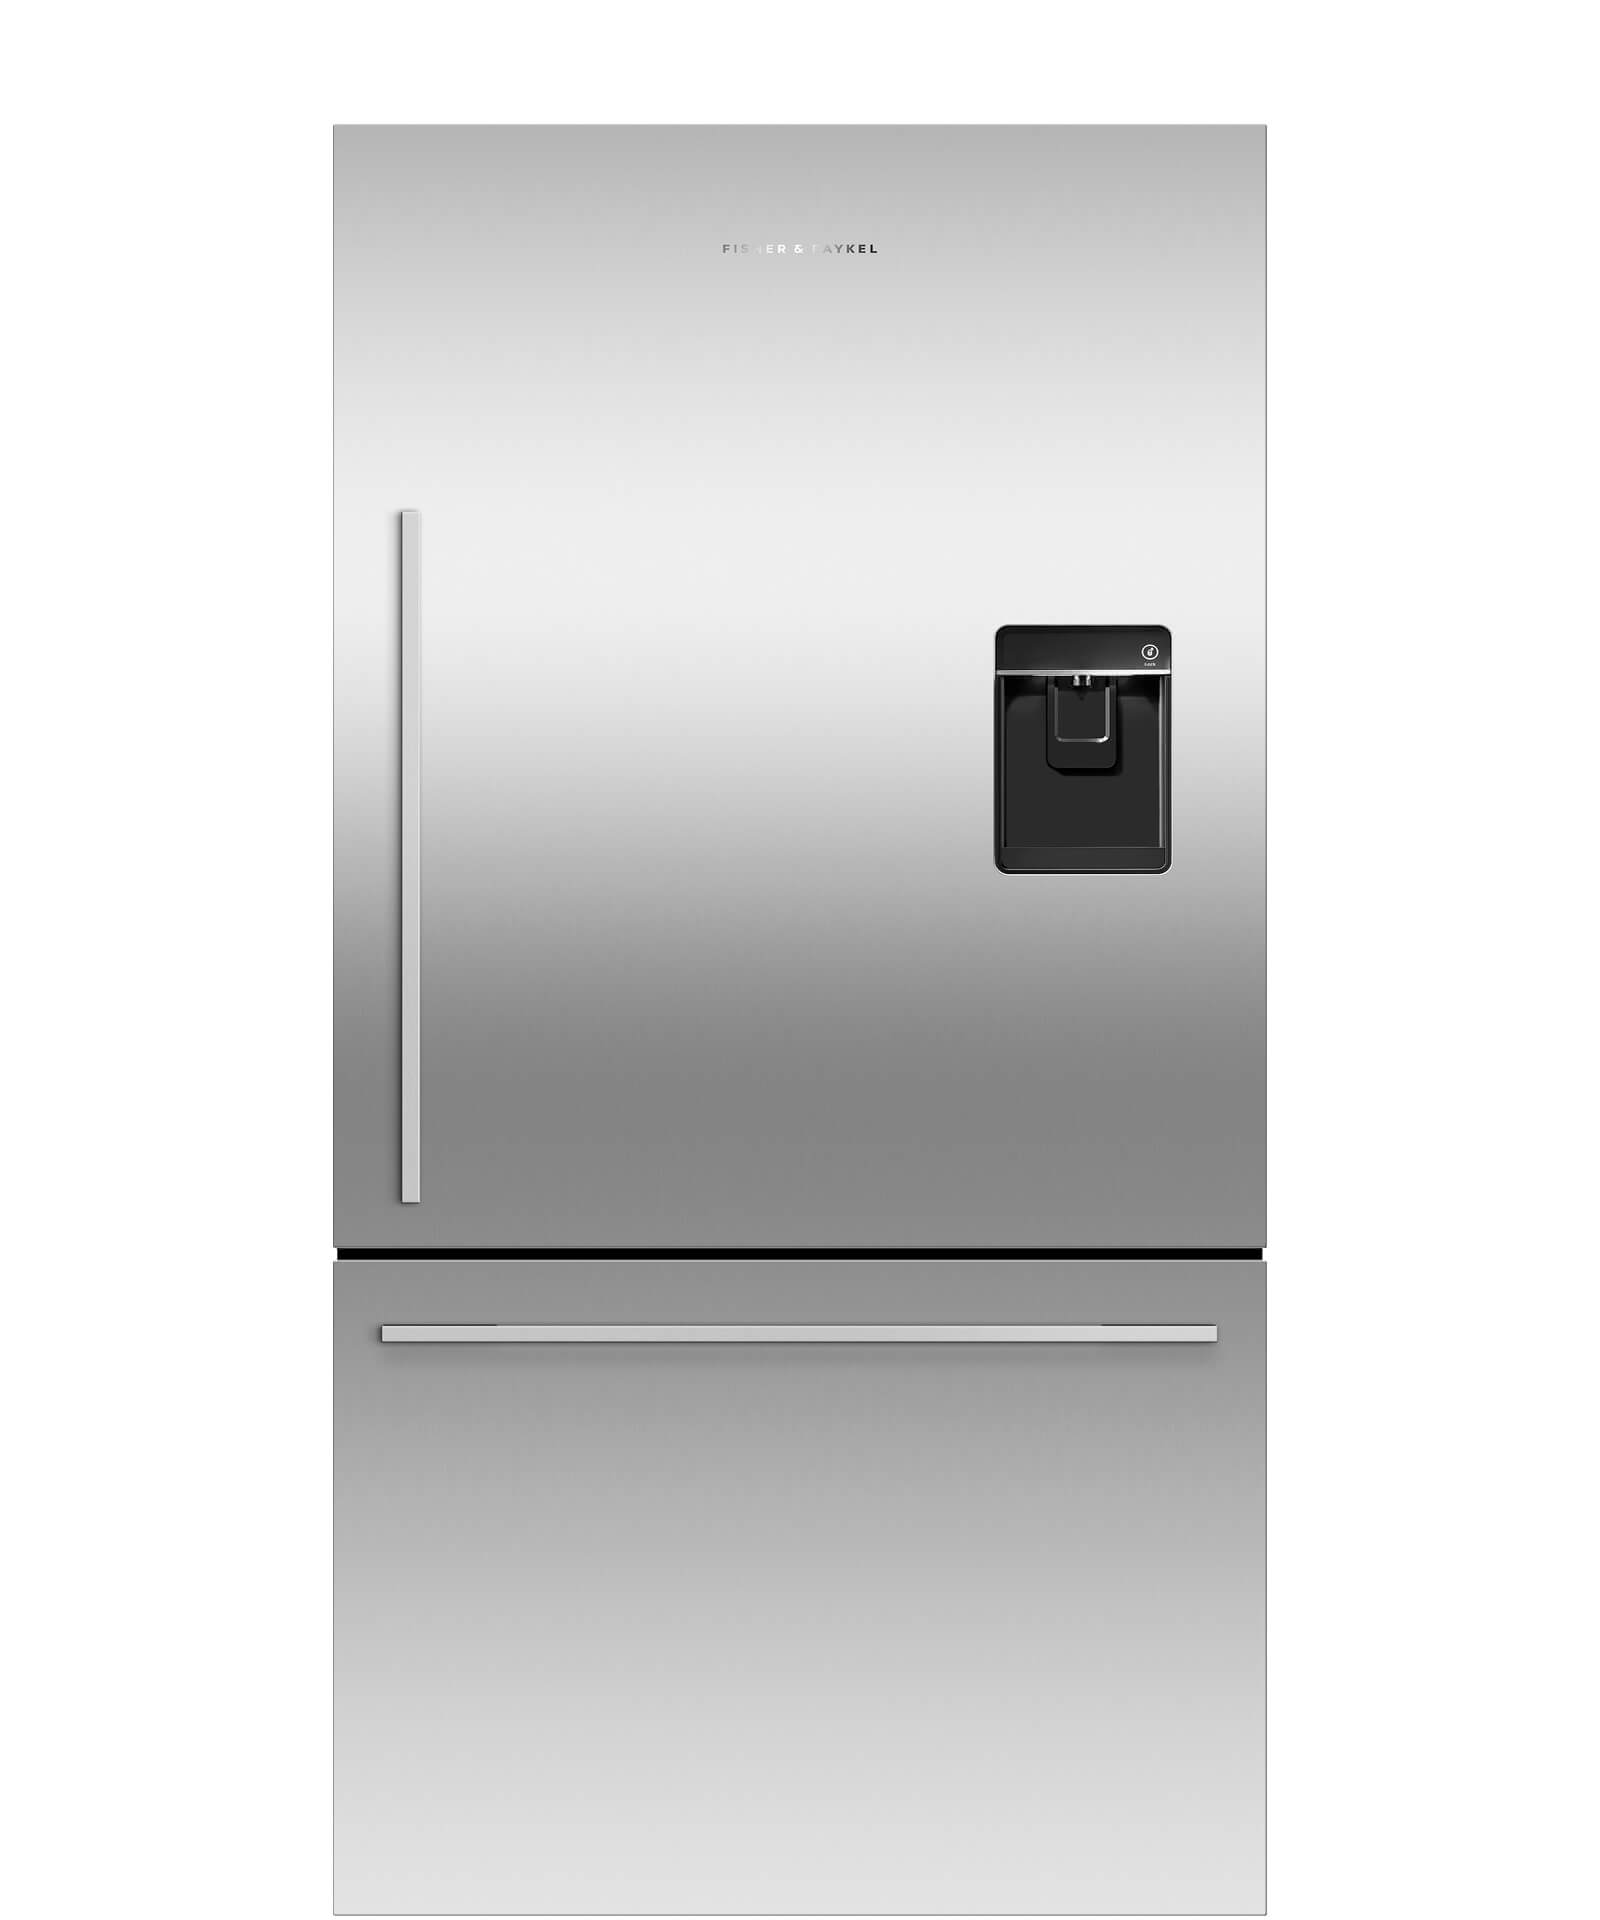 RF522WDRUX5 - ActiveSmart™ Fridge - 790mm Door Drawer with Ice & Water 519L - 25476